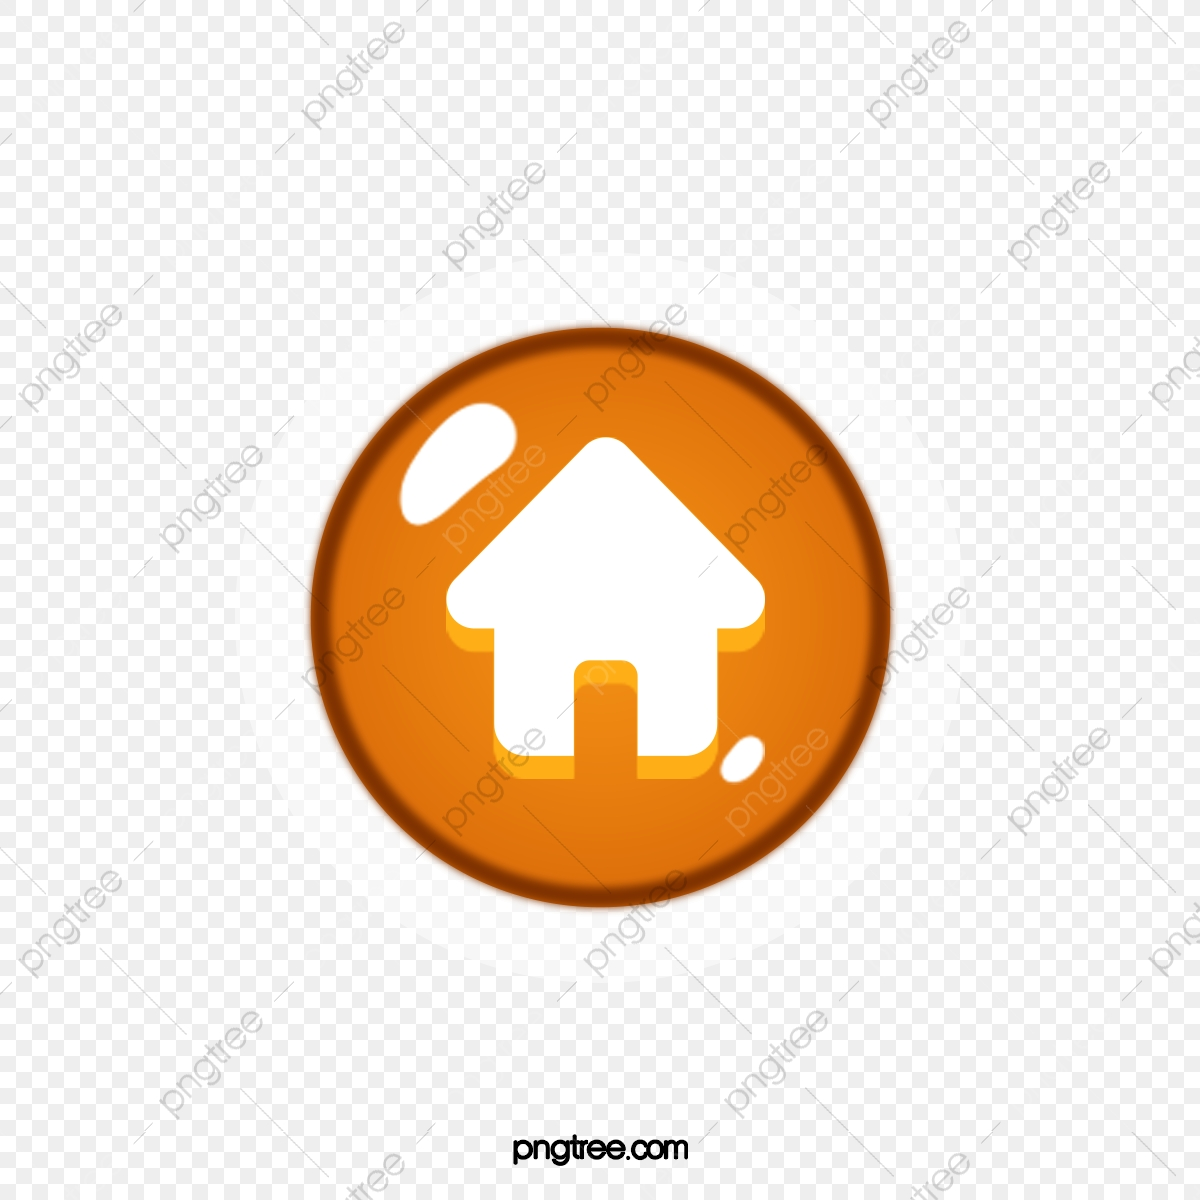 Hightech House Png Images Vector And Psd Files Free Download On Pngtree